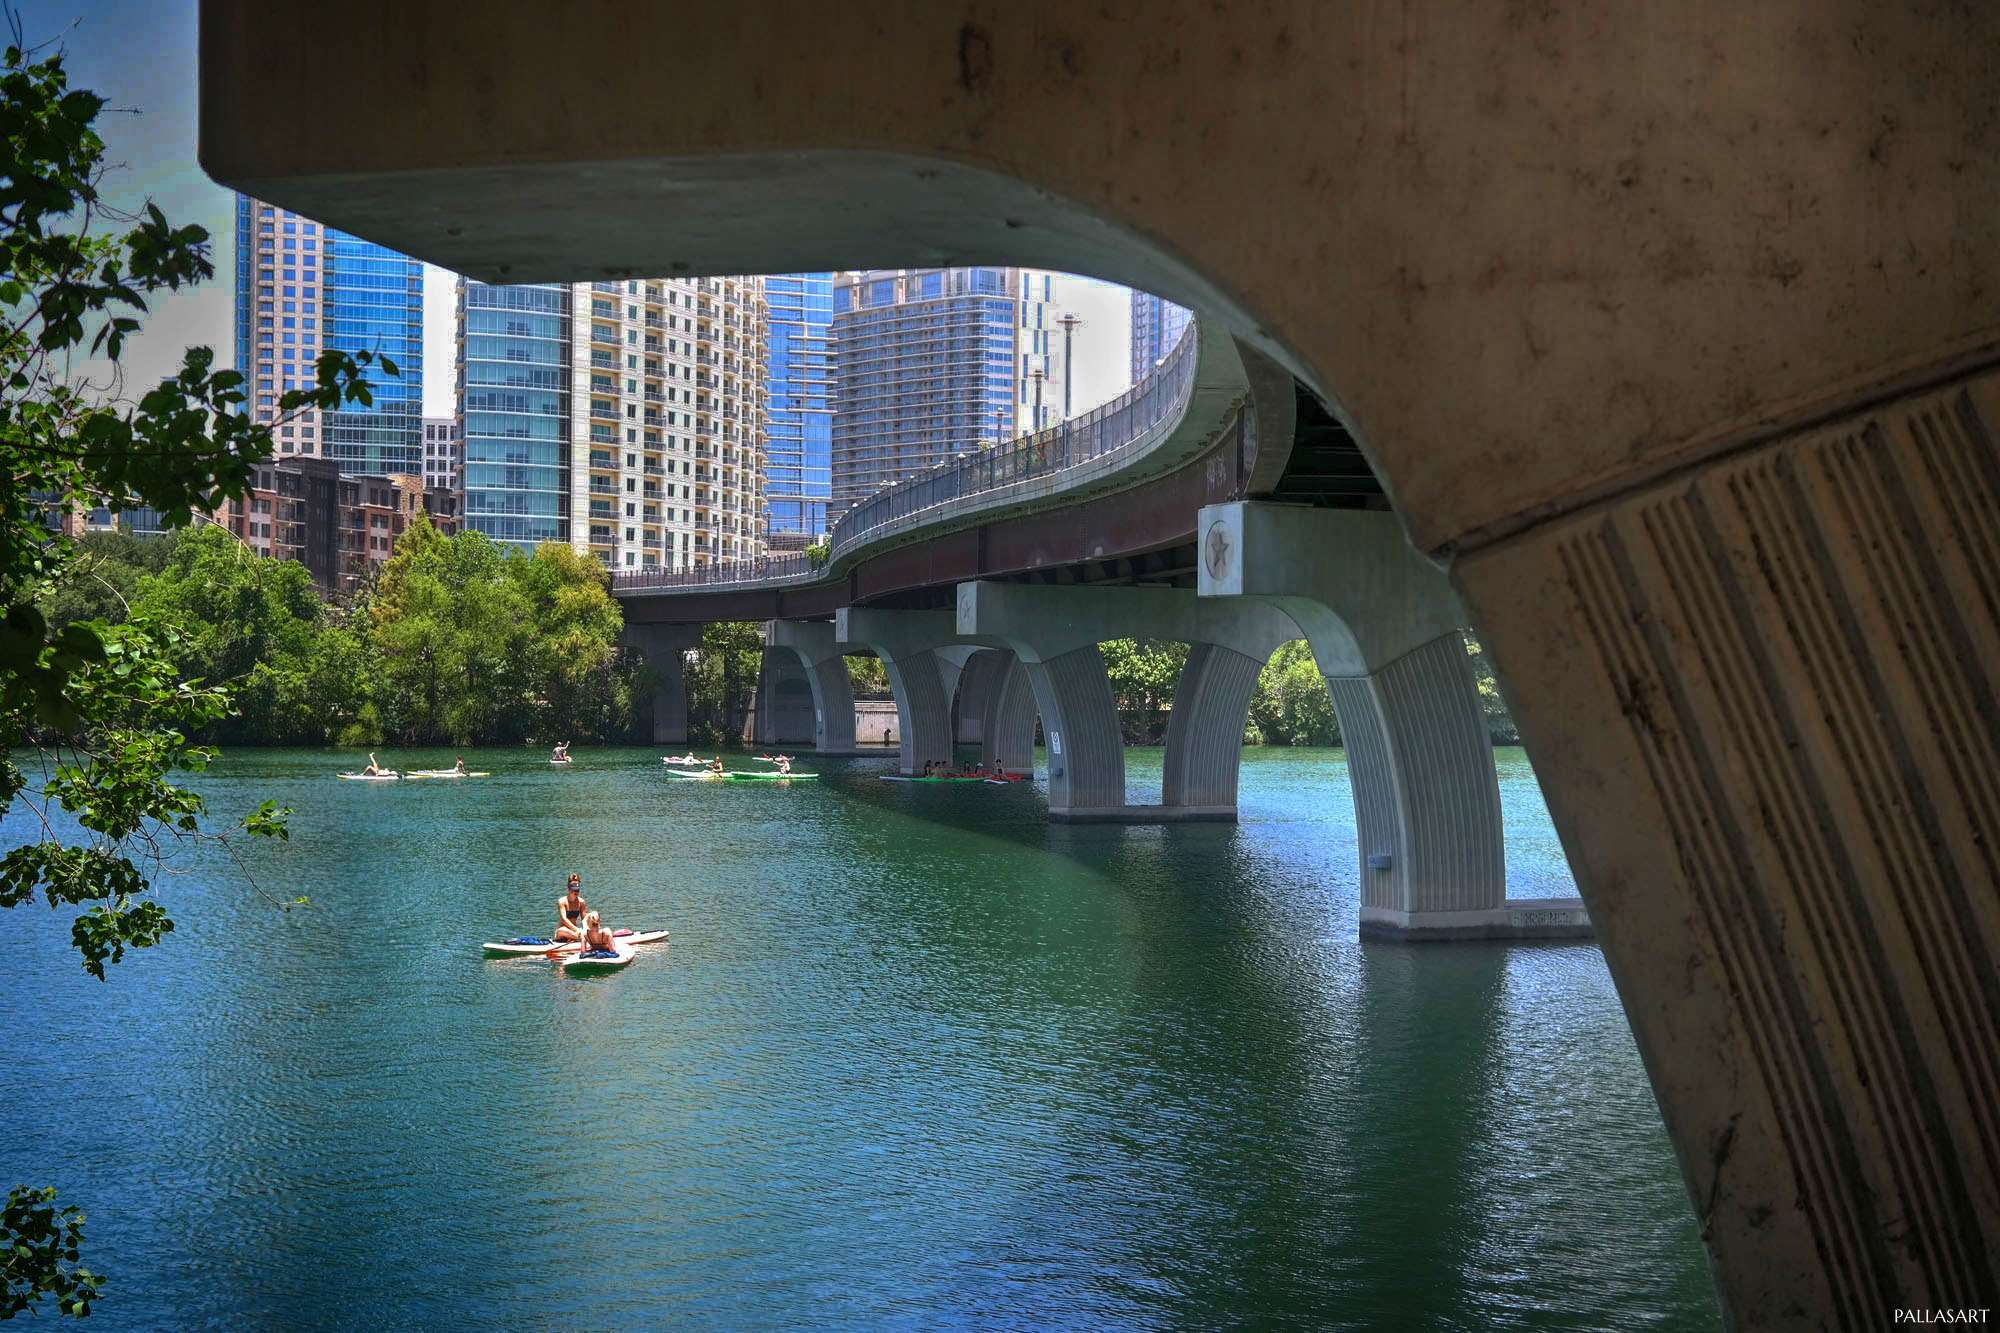 SUP under Pedestrian Bridge over Lady Bird Lake